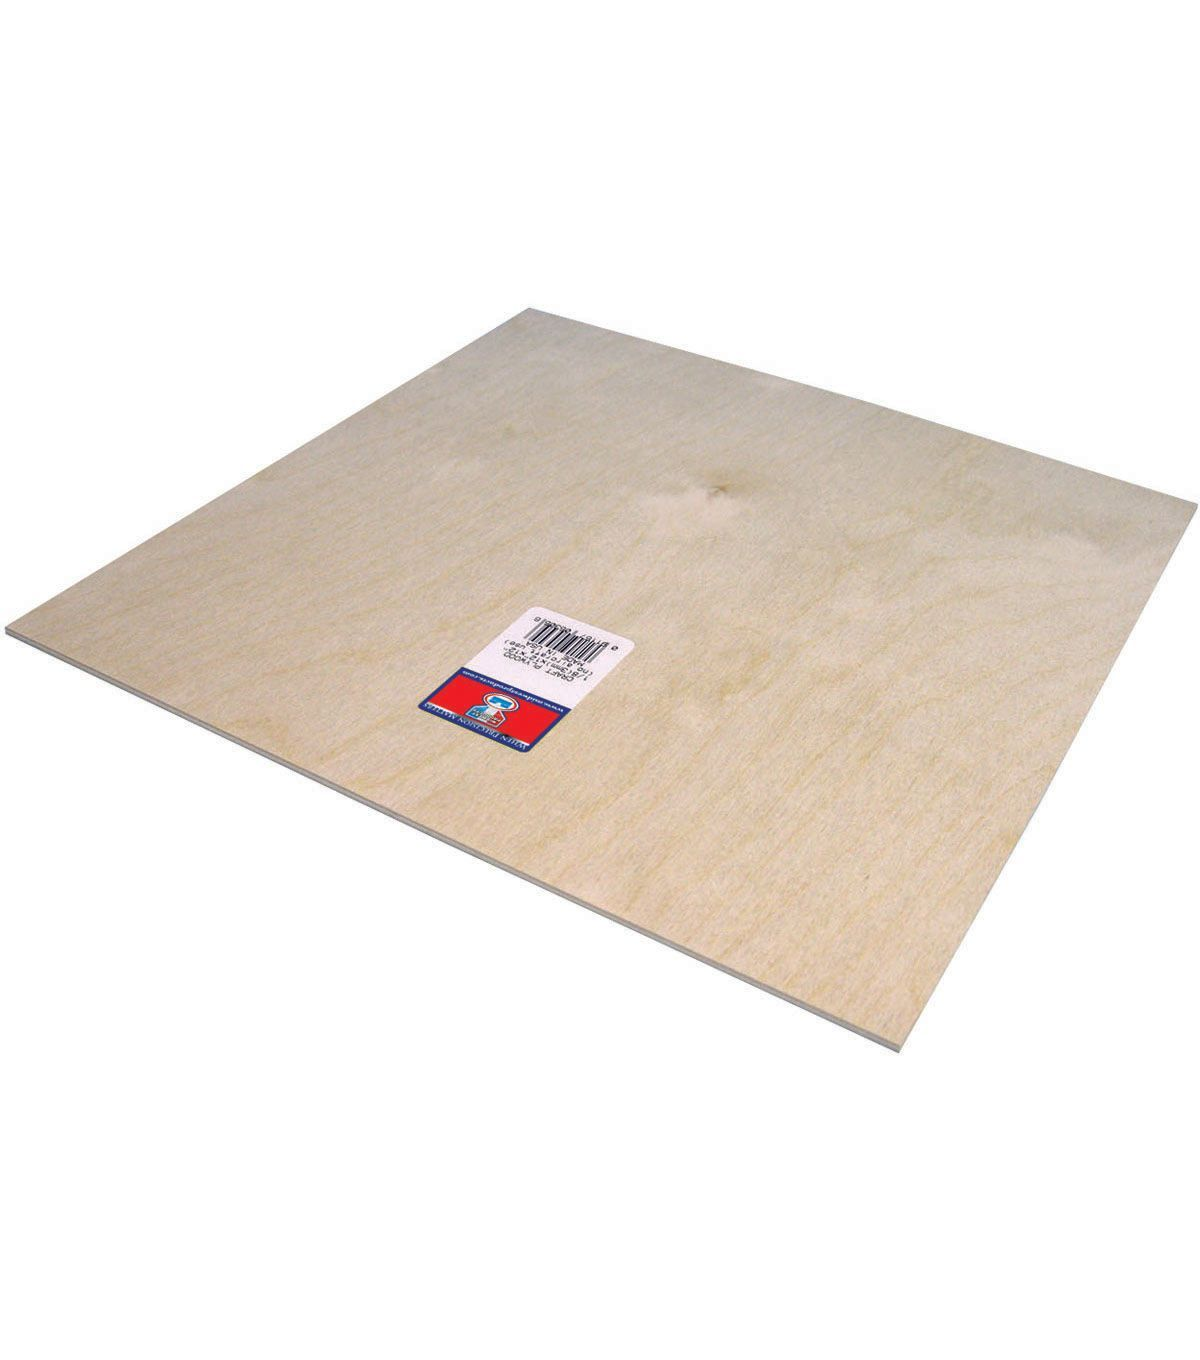 Midwest Products Plywood Sheet Plywood Sheets Wood Craft Supplies Unfinished Wood Crafts